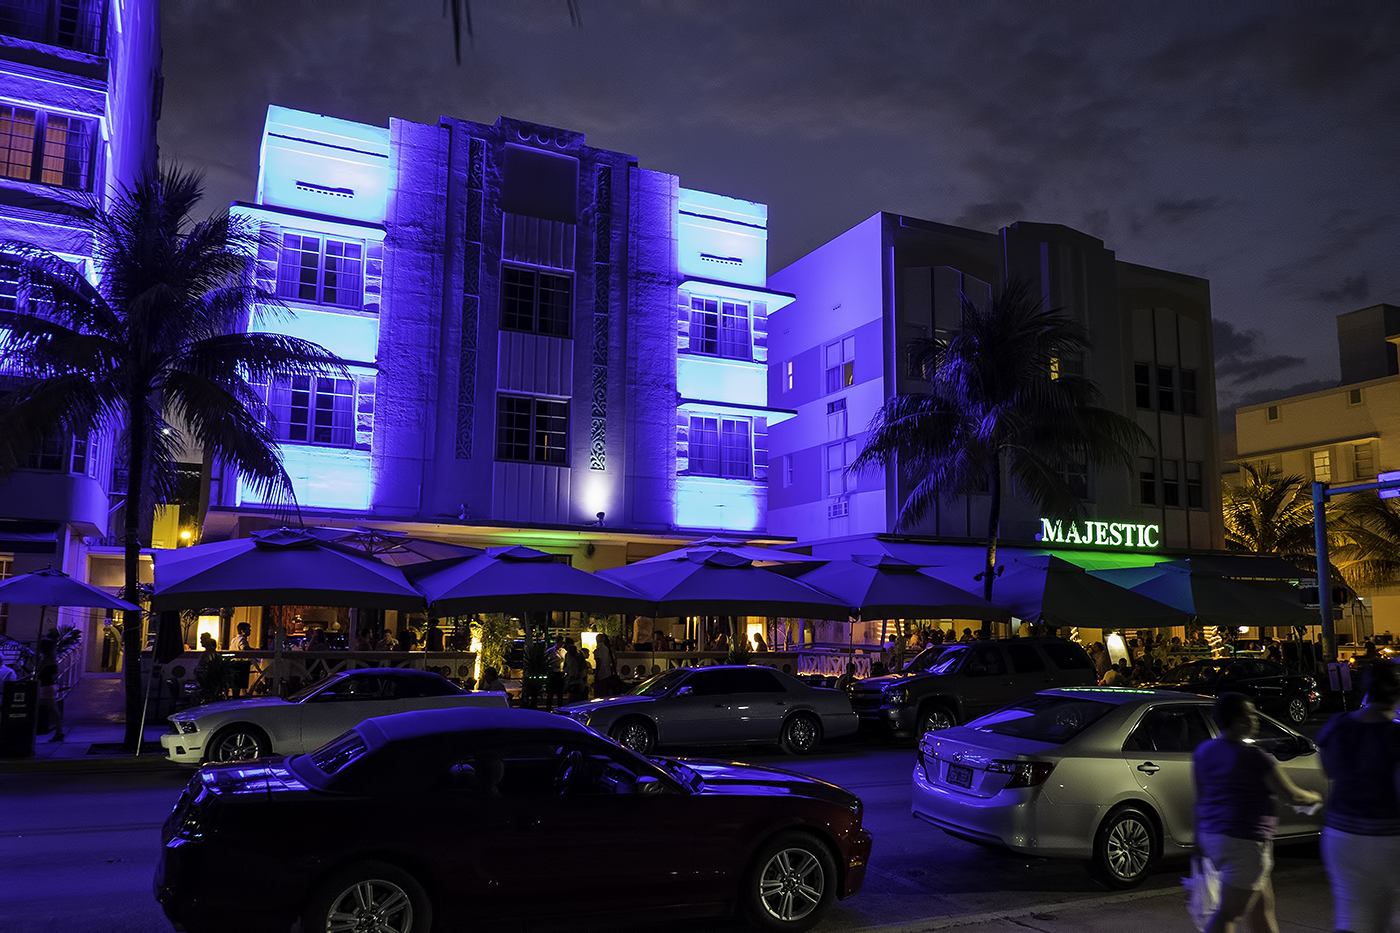 Majestic Hotel South Beach Miami Art Deco District